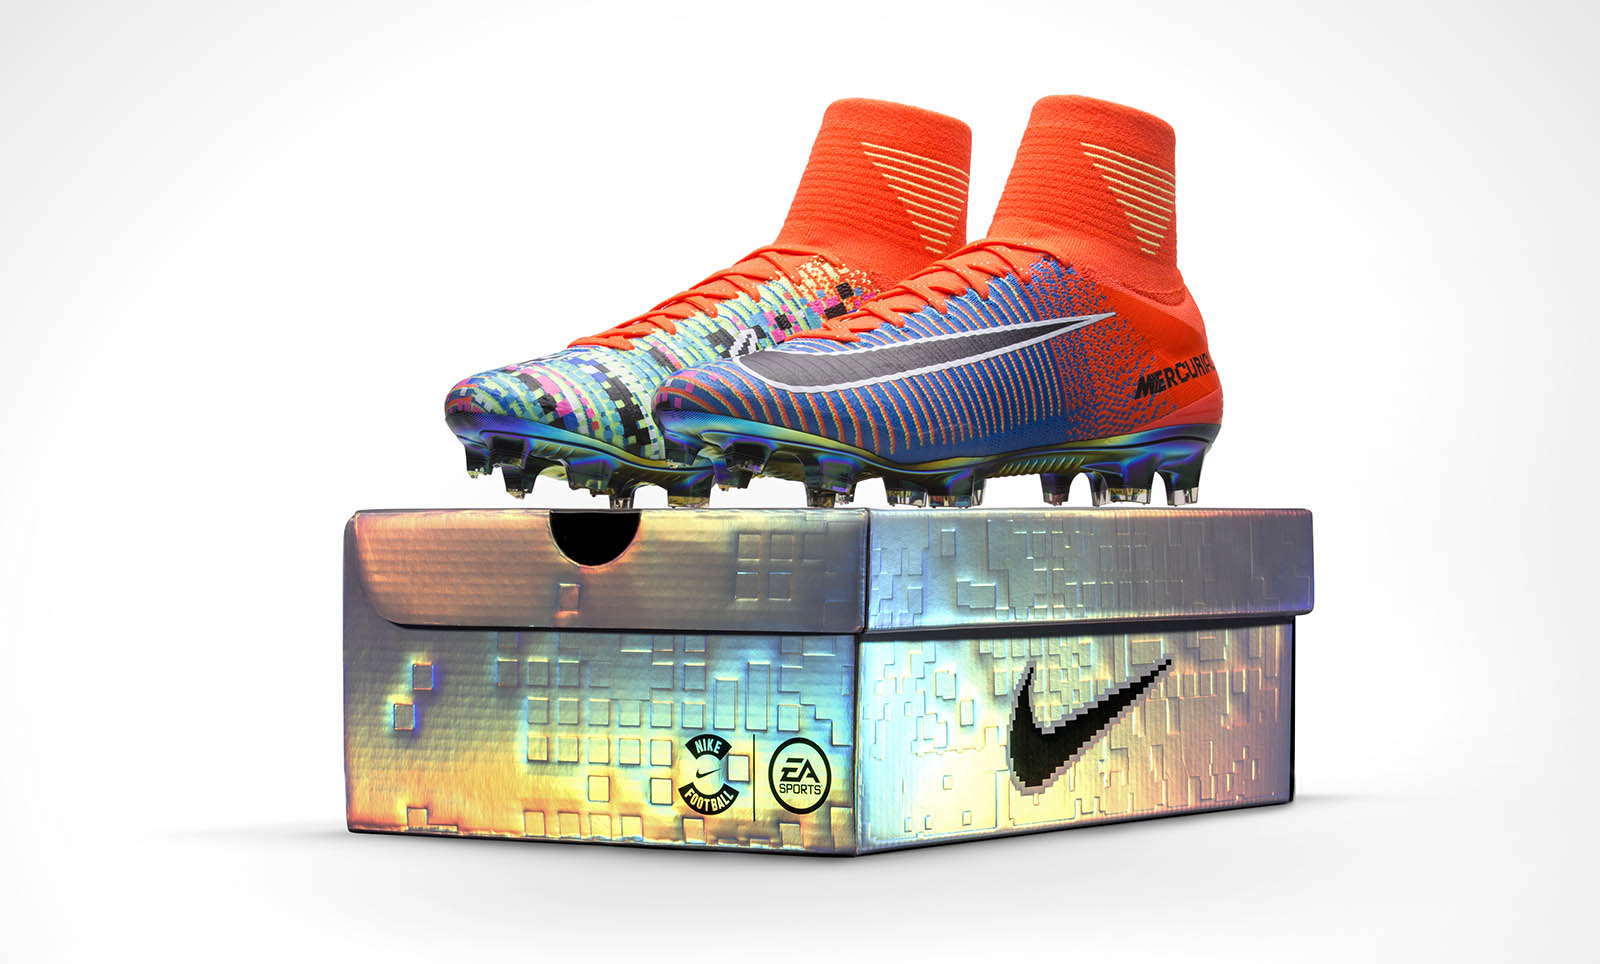 buy popular fc15d c36f1 Nike Phantom Vision EA Sports Boots Leaked - Unboxing Video ...